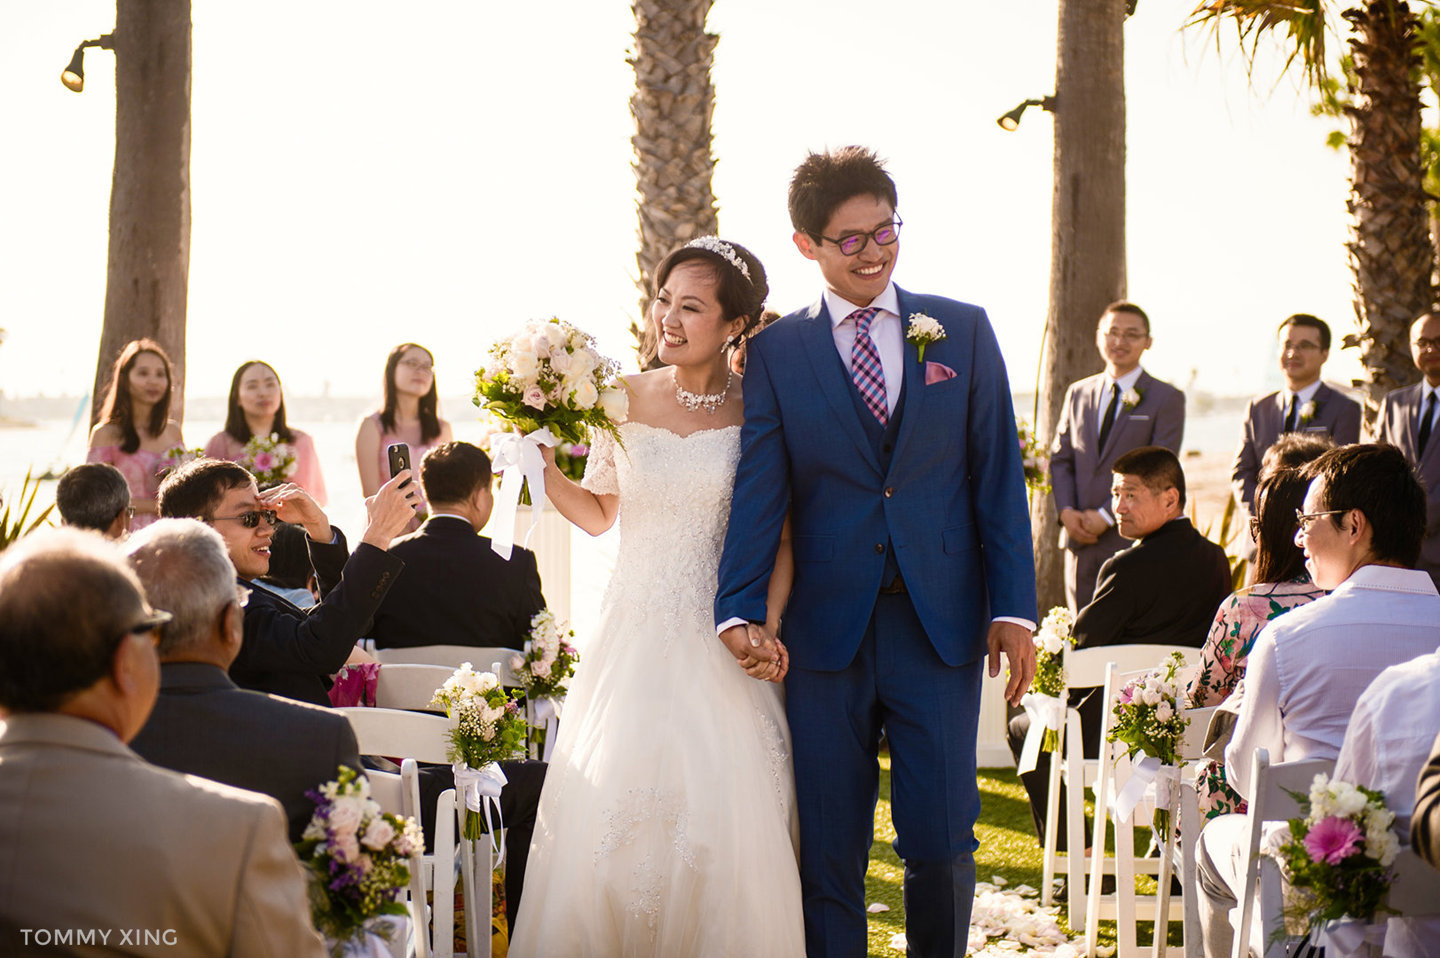 Paradise Point Resort Wedding Xiaolu & Bin San Diego 圣地亚哥婚礼摄影跟拍 Tommy Xing Photography 洛杉矶婚礼婚纱照摄影师 177.jpg